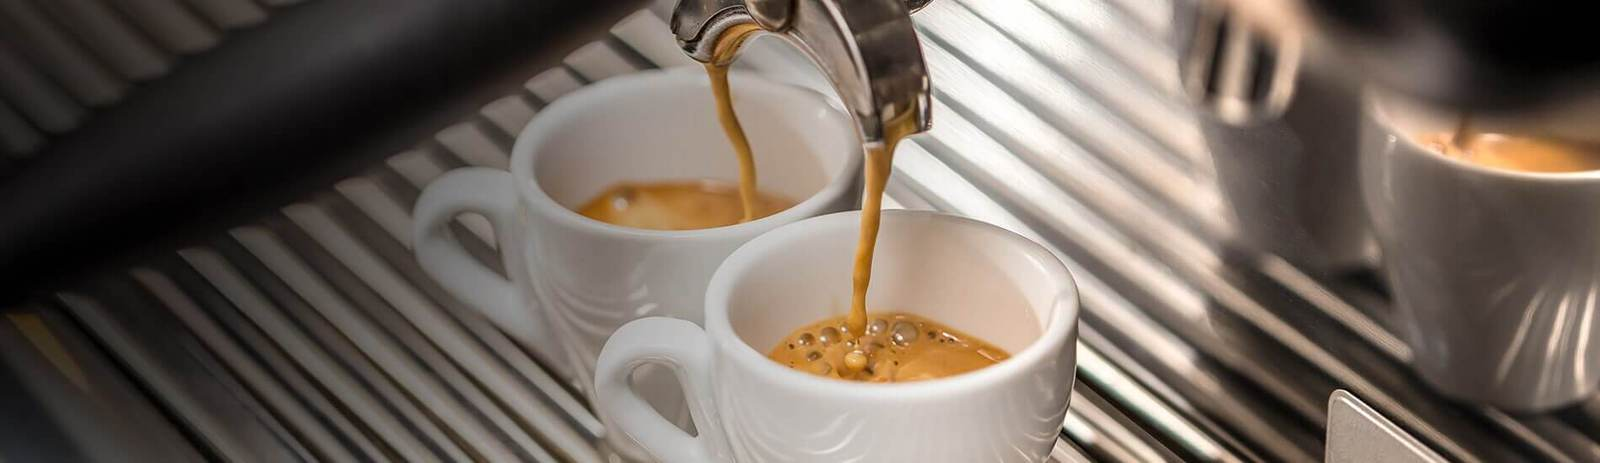 hotel commercial coffee machines